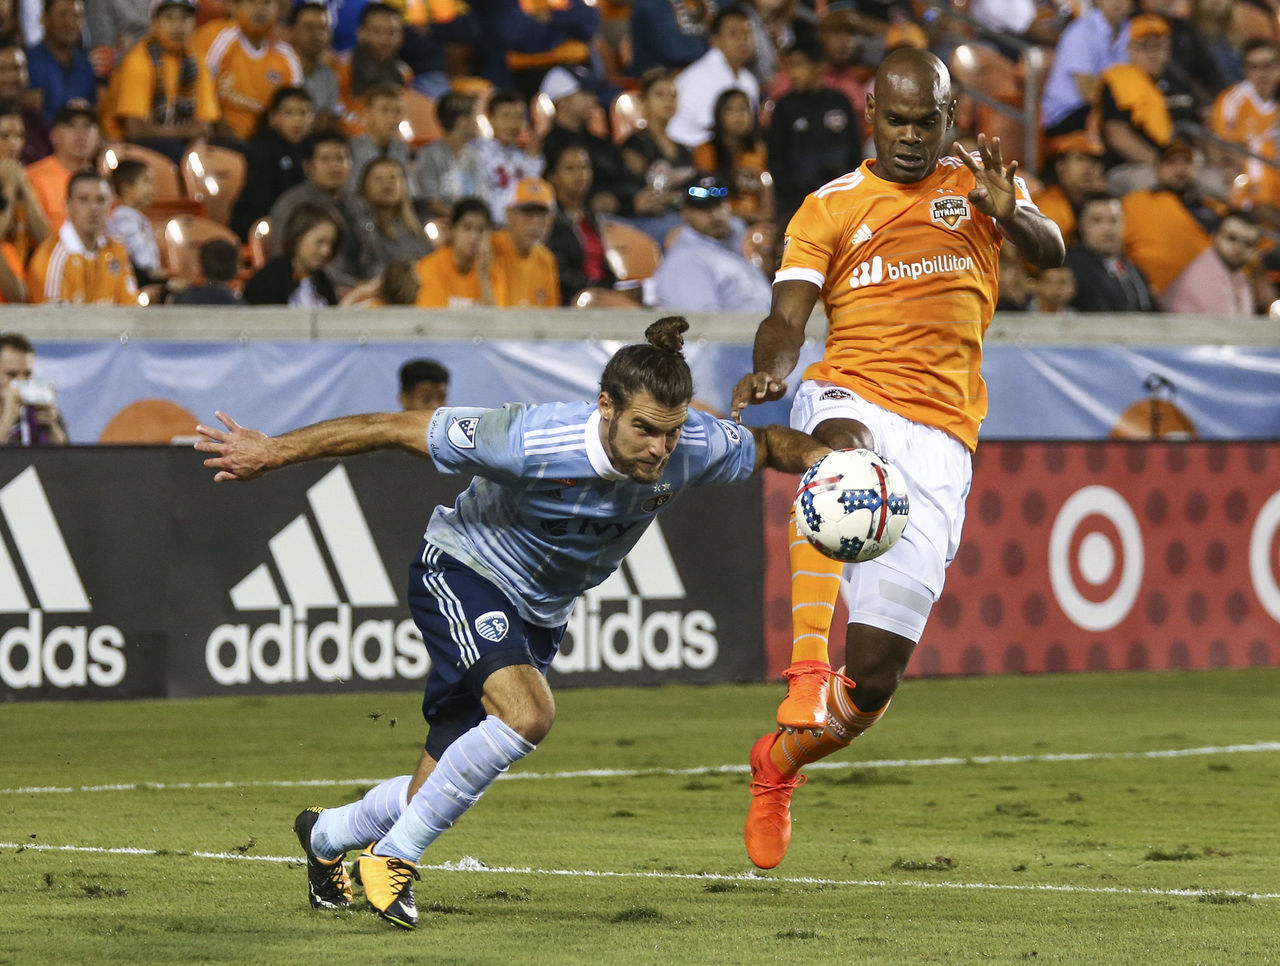 Cropped 2017 10 27t025943z 1100074542 nocid rtrmadp 3 mls western conference knockout round sporting kc at houston dynamo